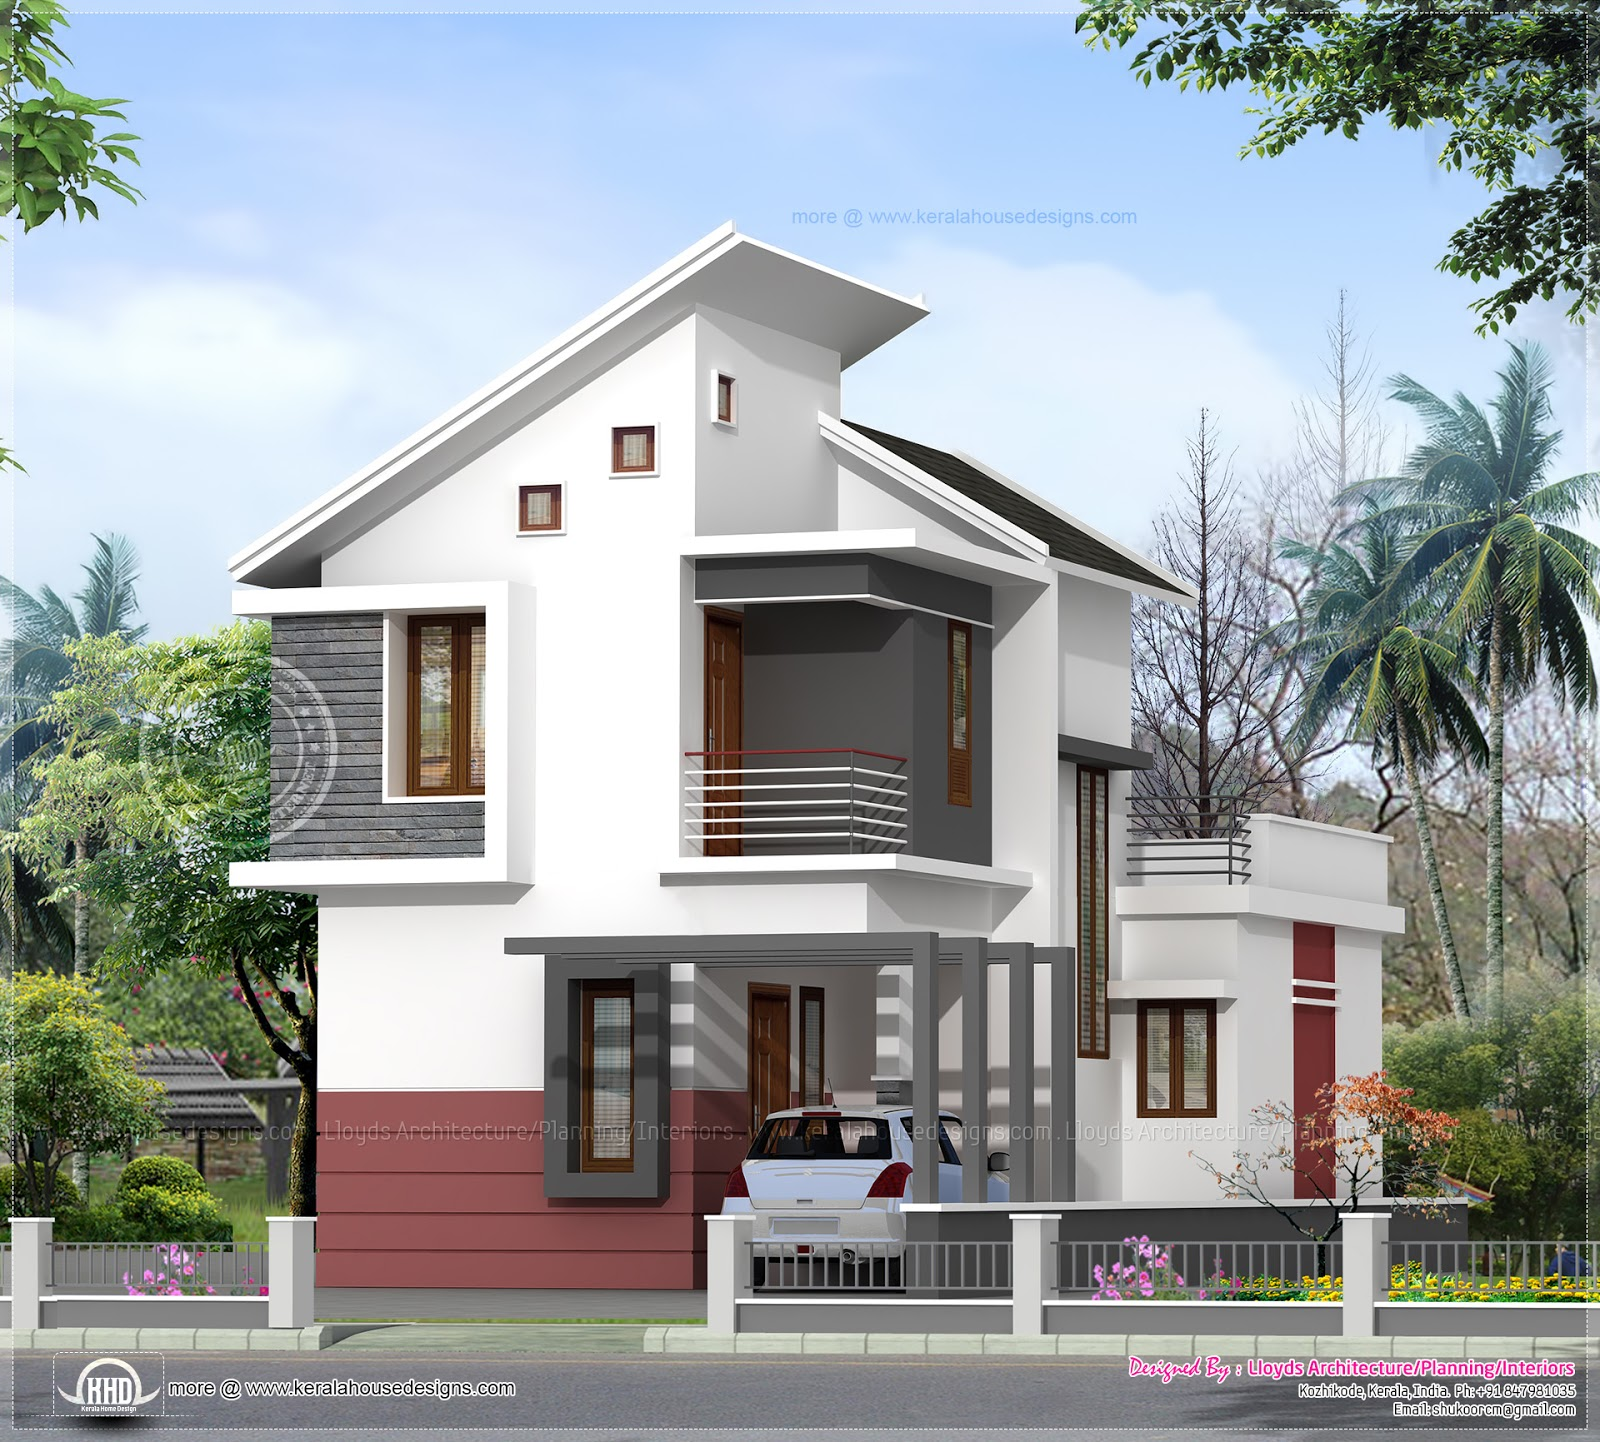 1197 sq ft 3 bedroom villa in 3 cents plot kerala home for Home design sites